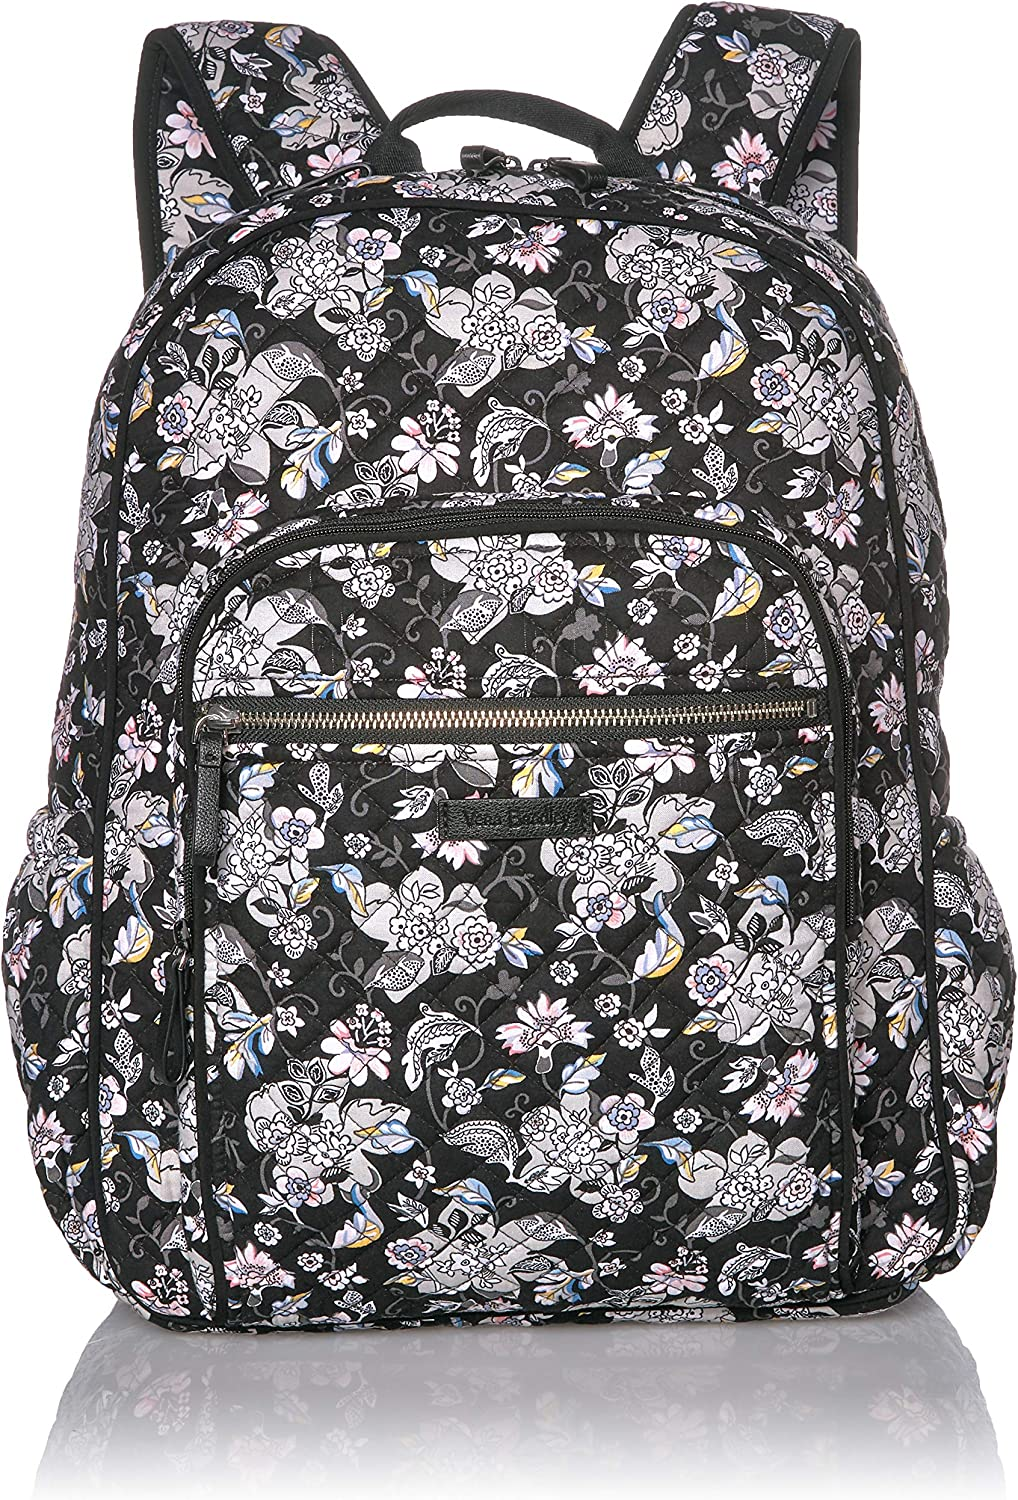 The Best Backpack 15 Laptop